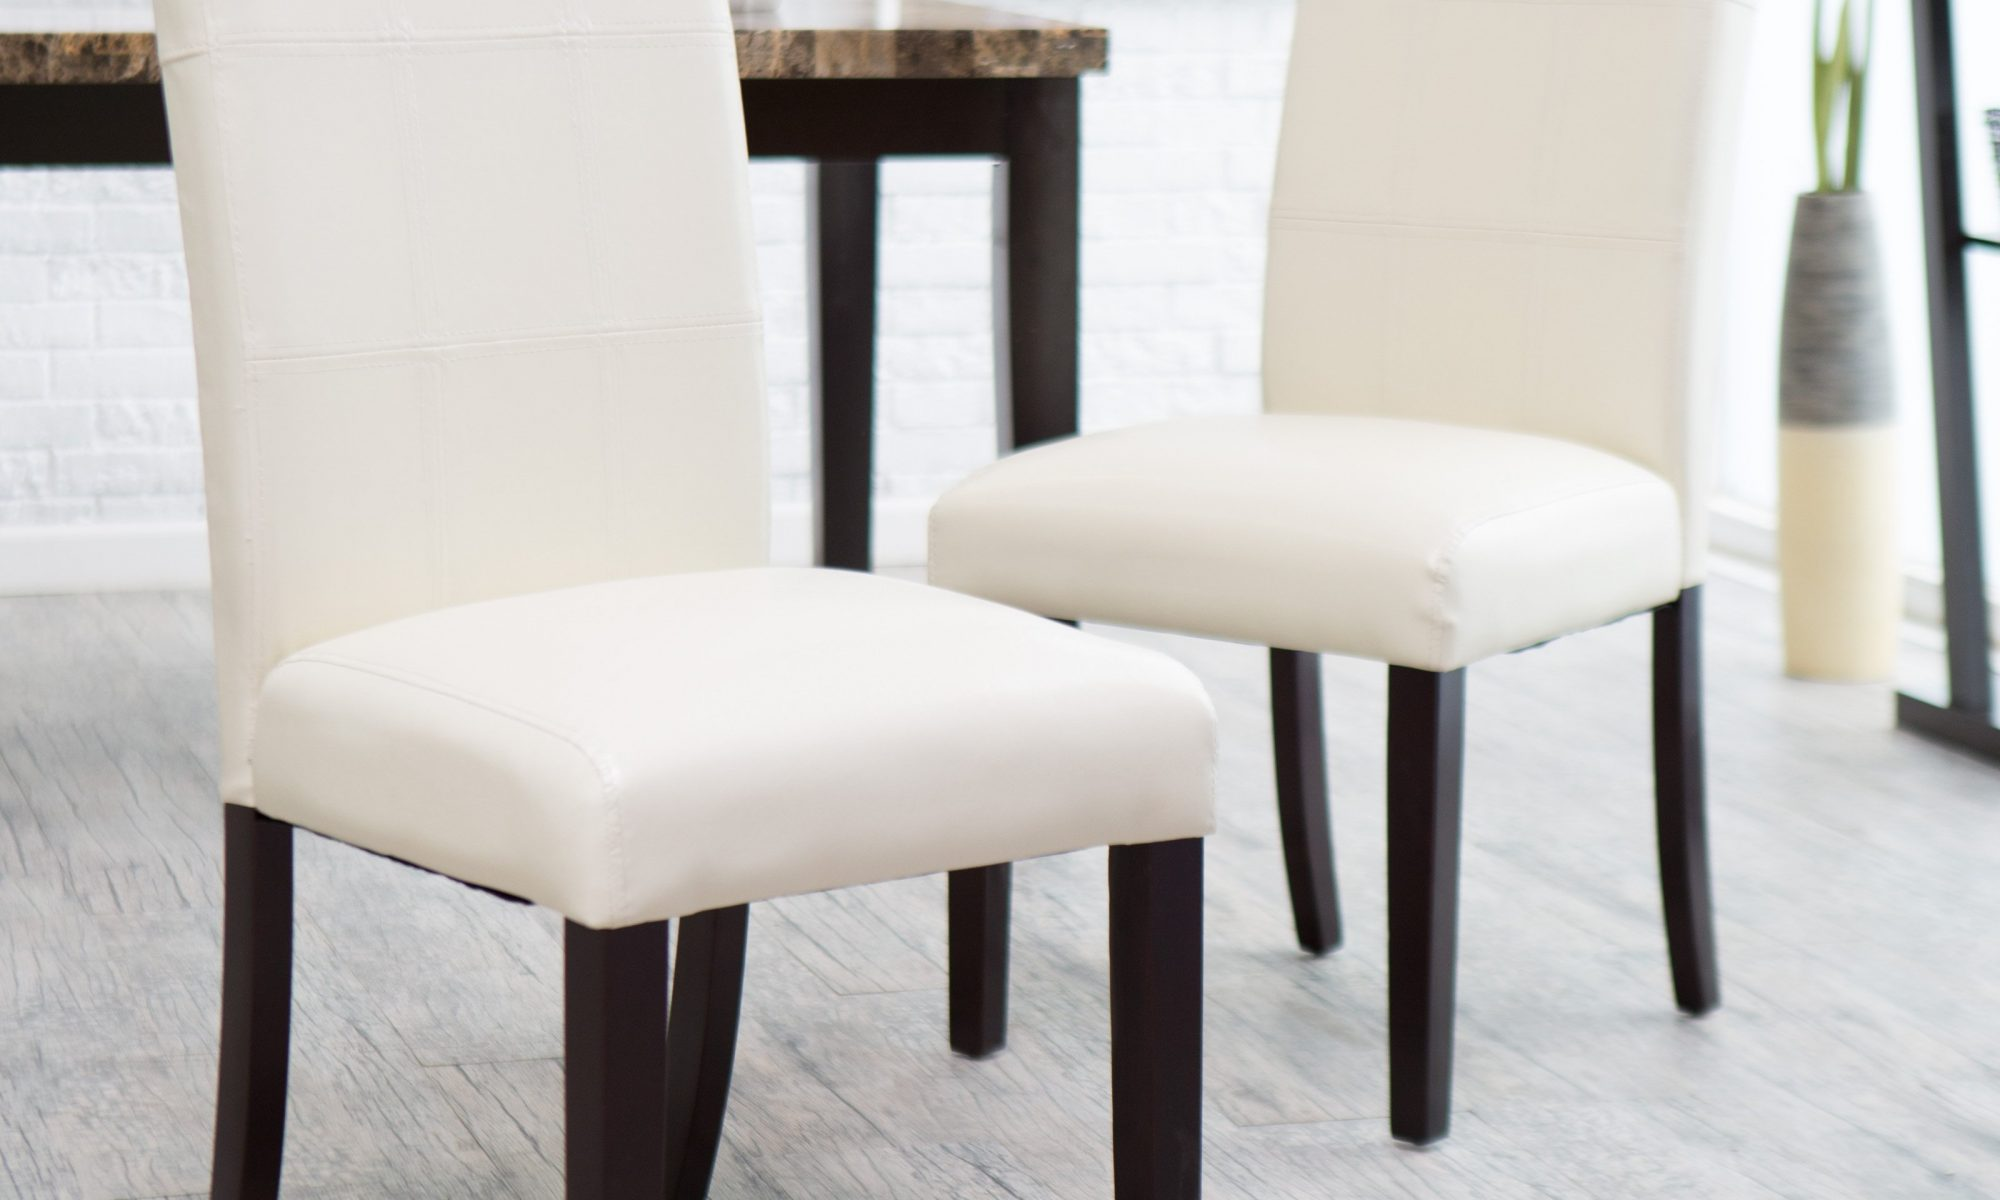 dining room chairs avorio ivory dining chair set of 2 hayneedledining room chairs